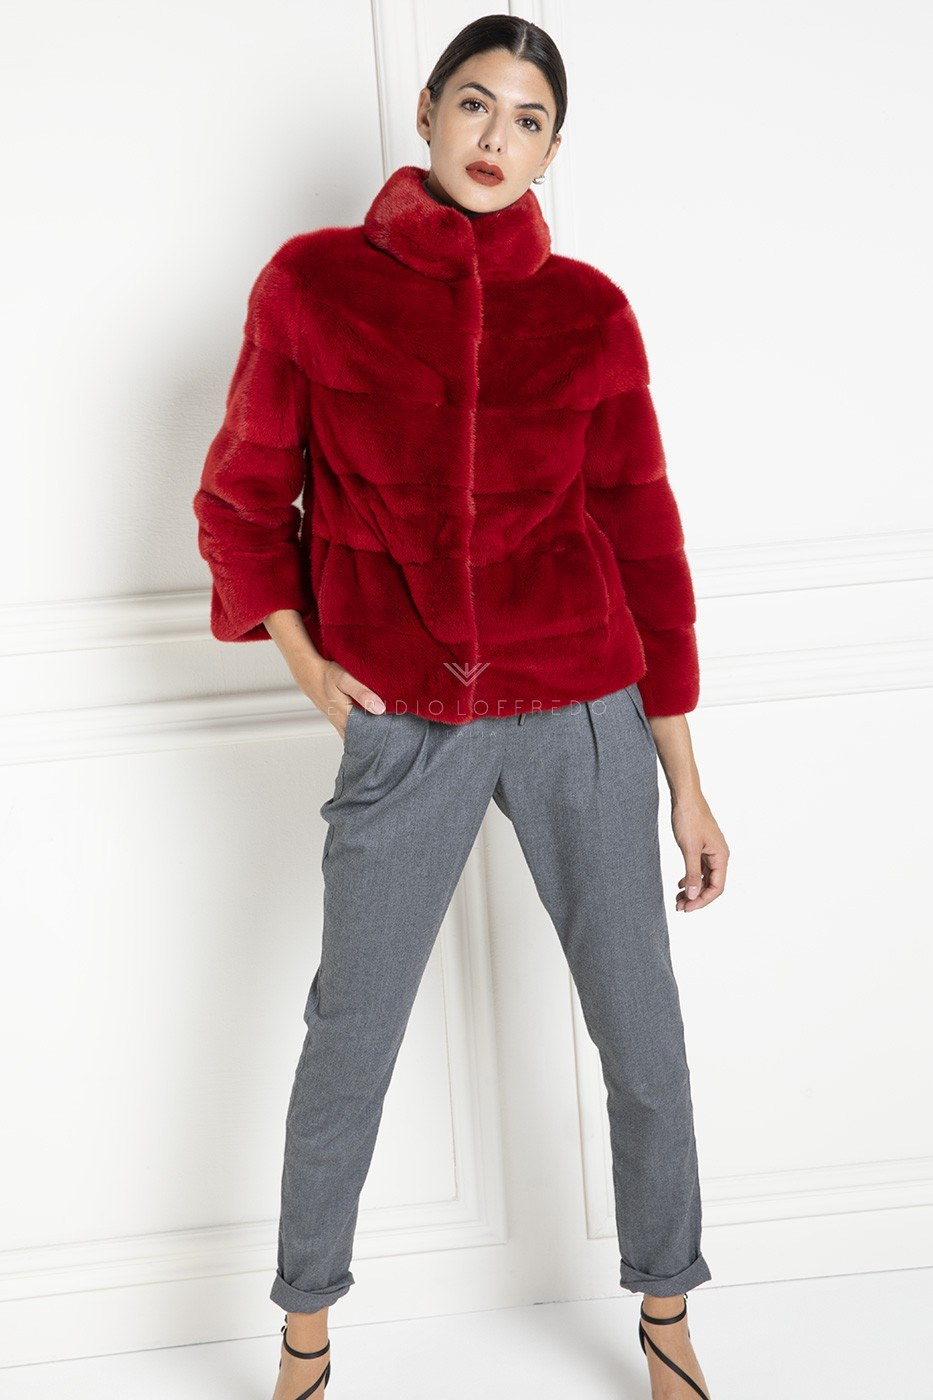 Red Mink Jacket with Round Collar - Length 65 cm